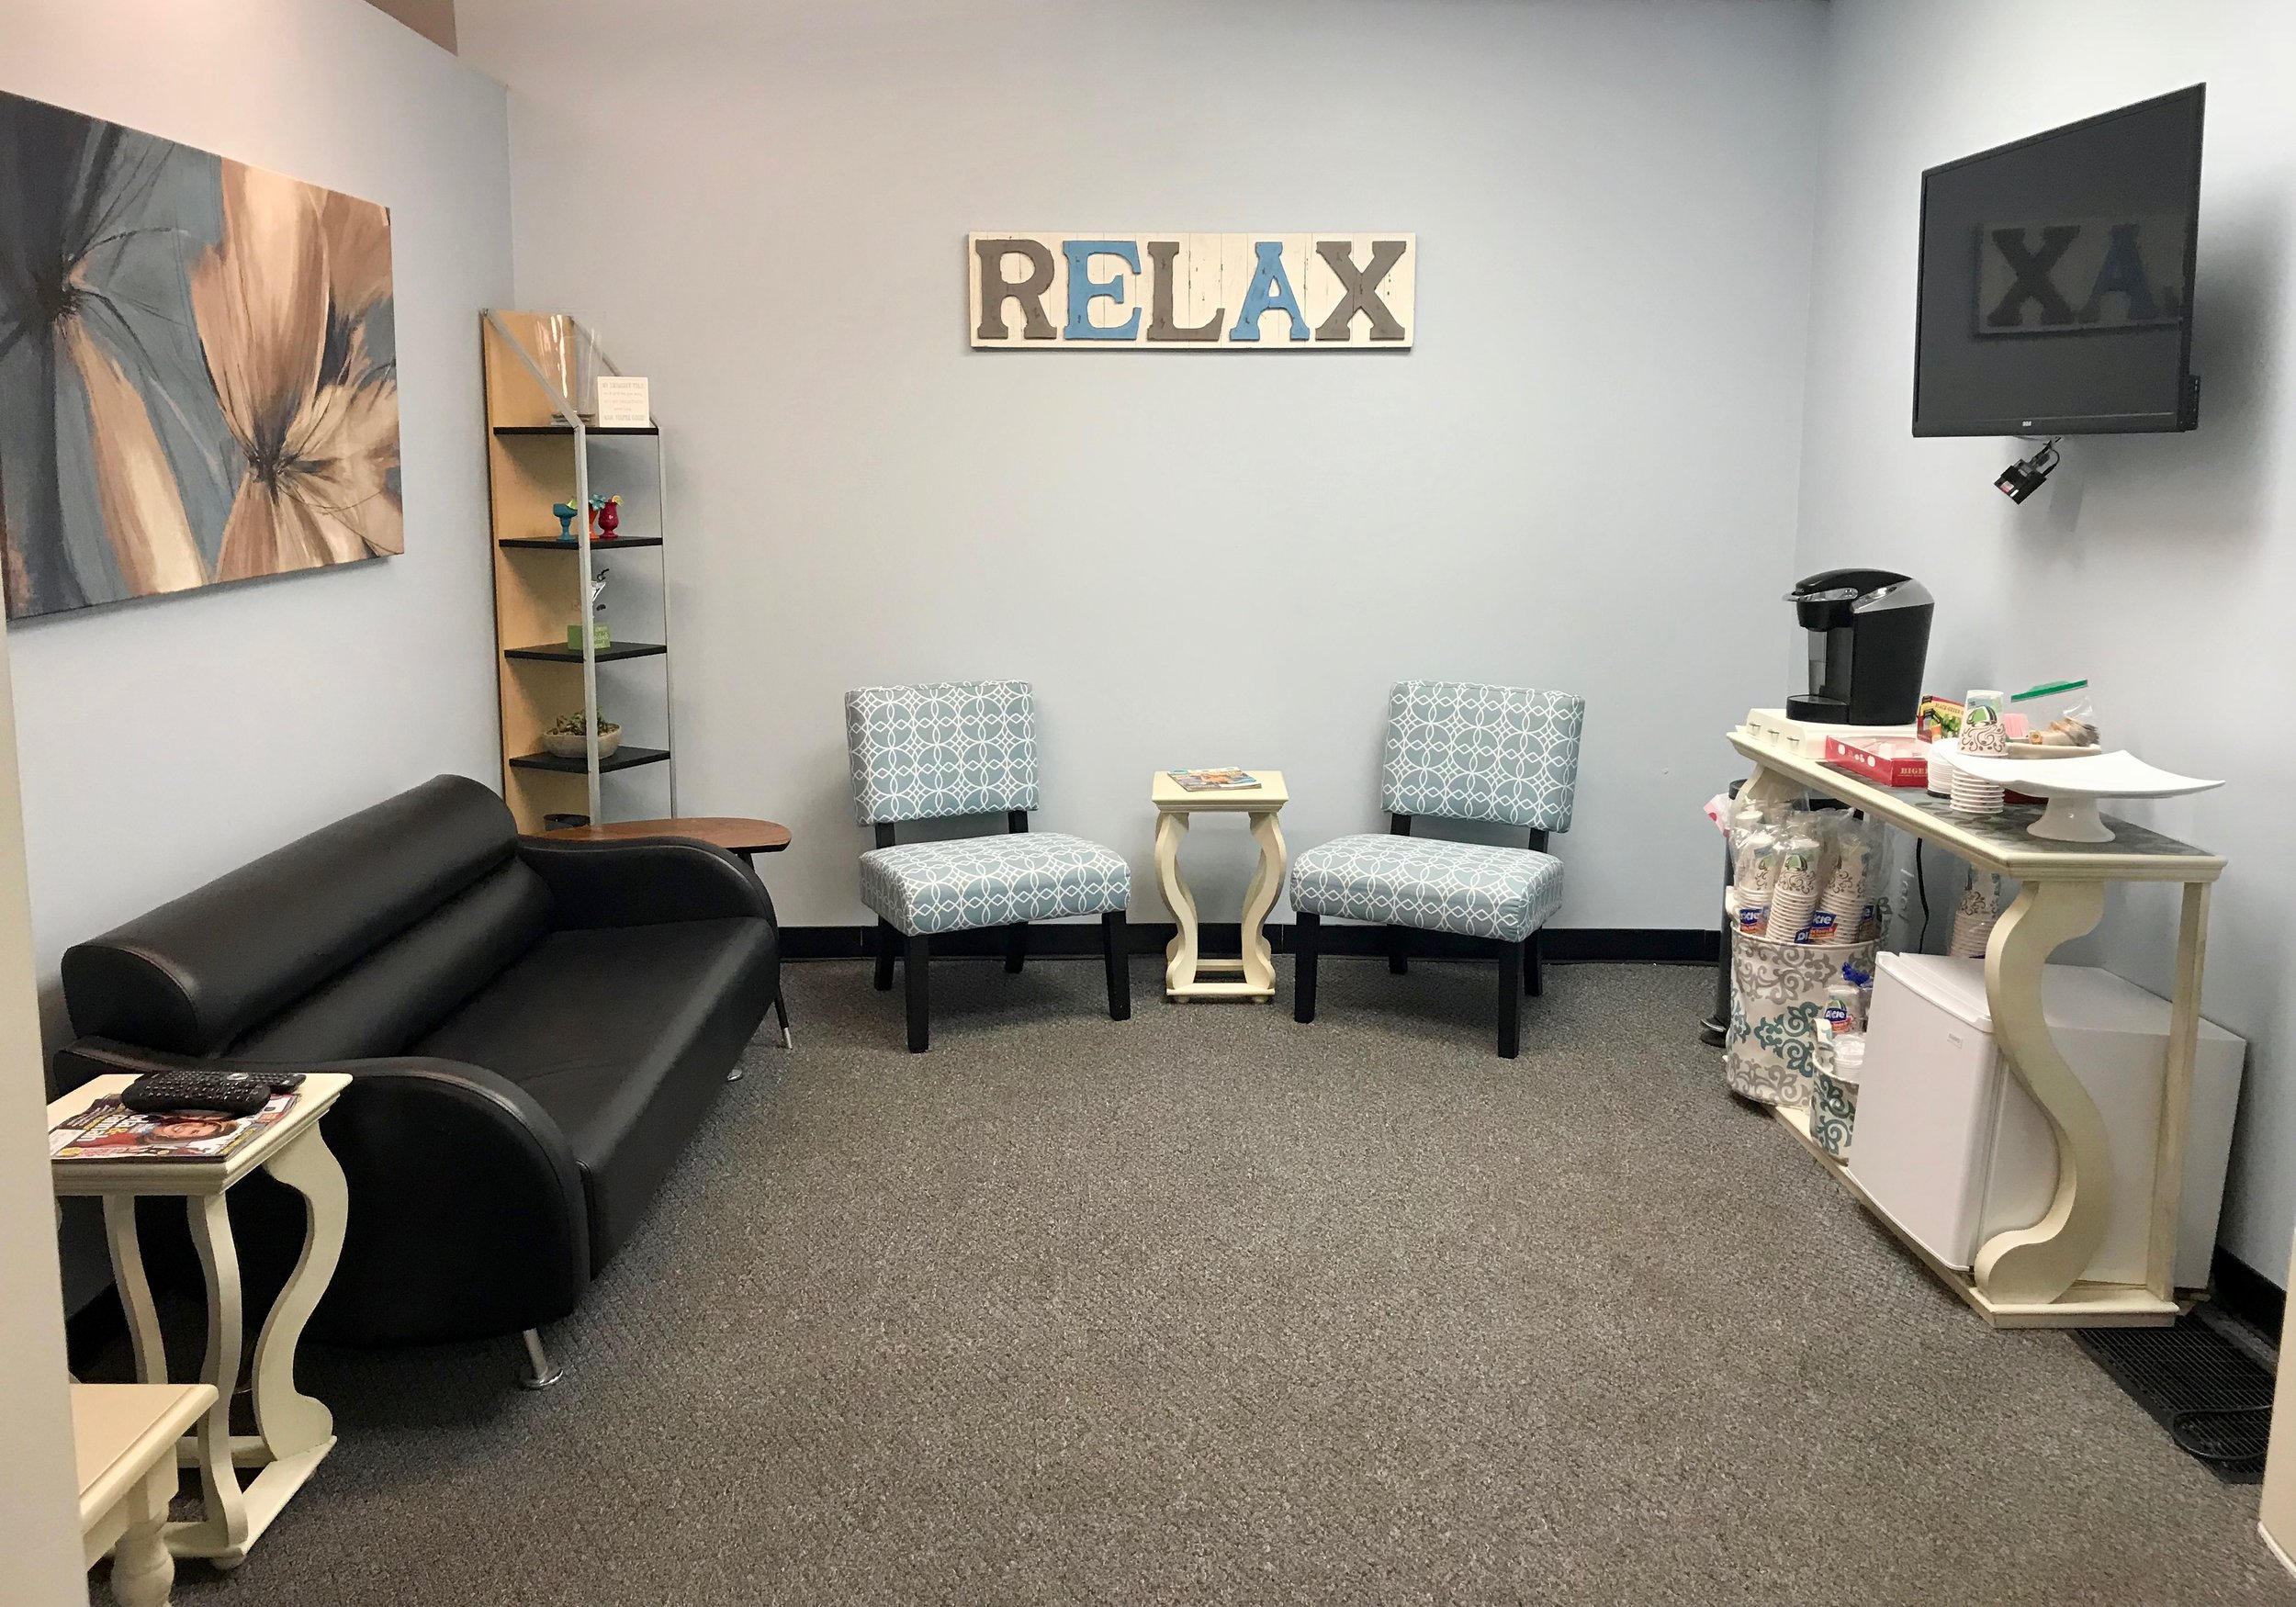 Weddings - Let us take the stress out of your wedding day. Dynamic Image has a private room for you and your wedding party to relax and enjoy while you prepare for your big day. Call to schedule and we will help you with all the details!